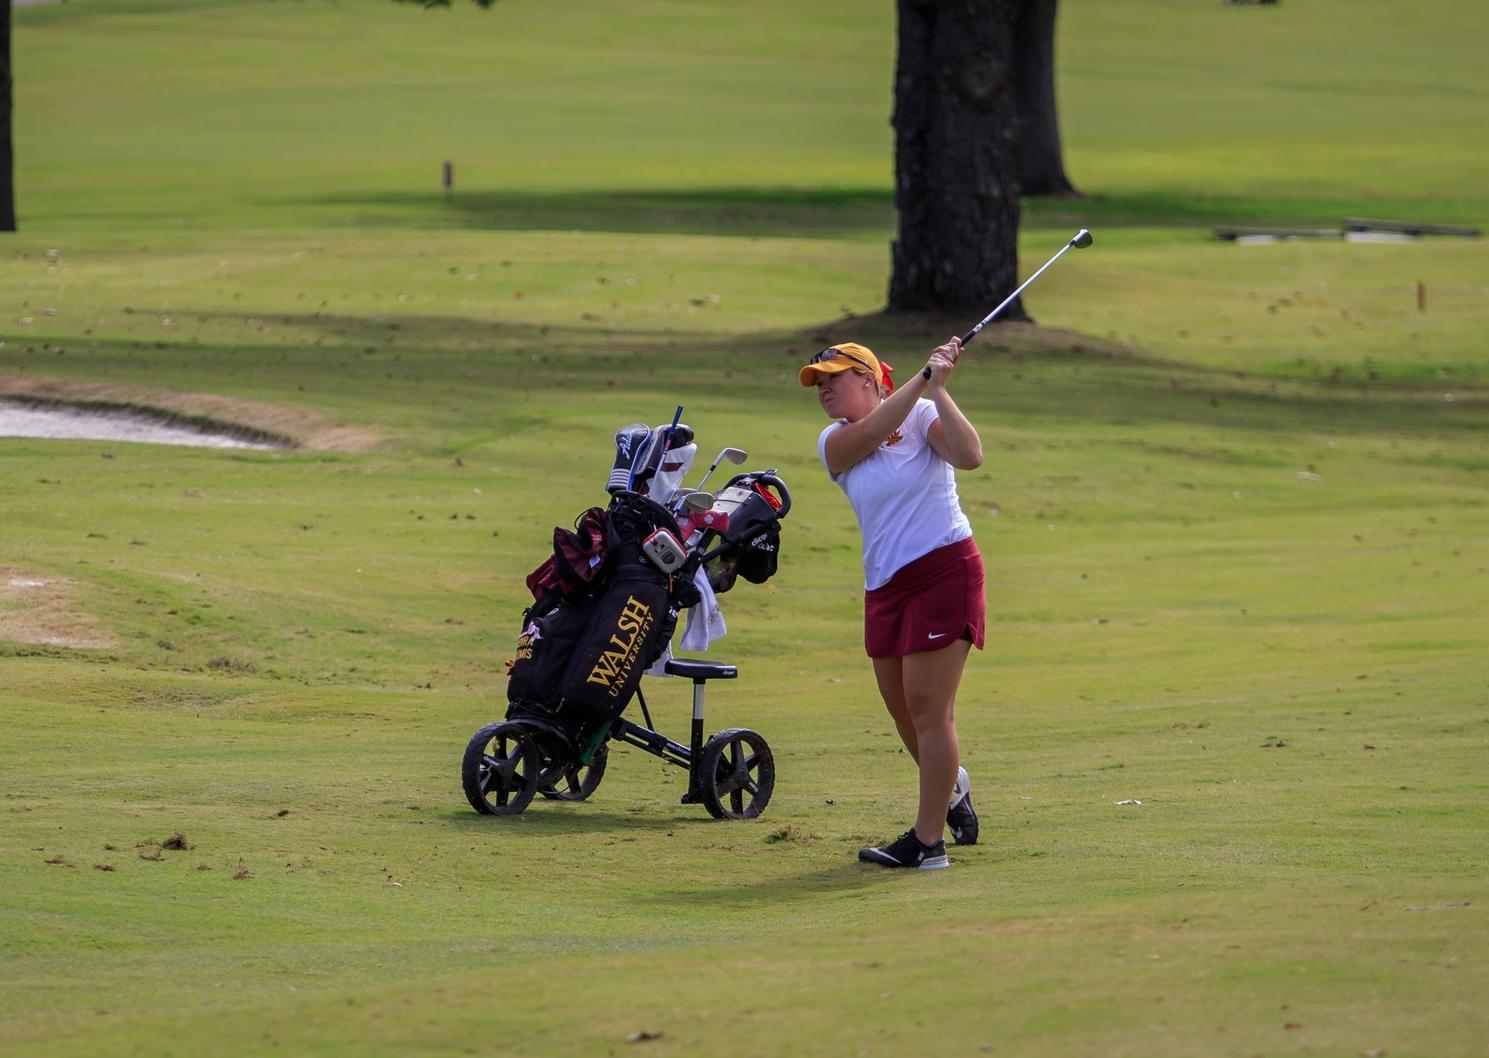 Women's Golf Improves After Day One